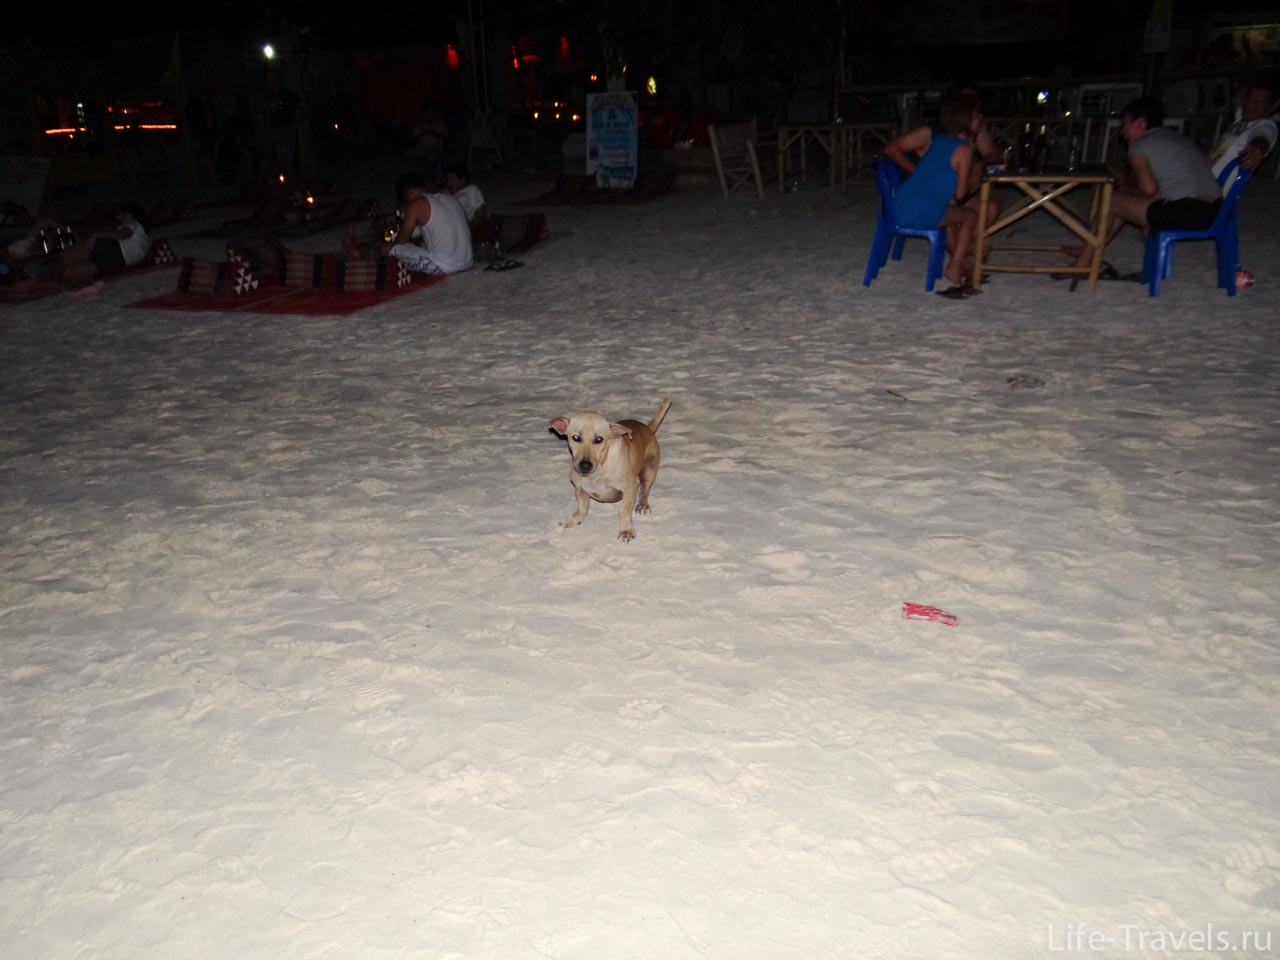 night cafe on the beach and dog